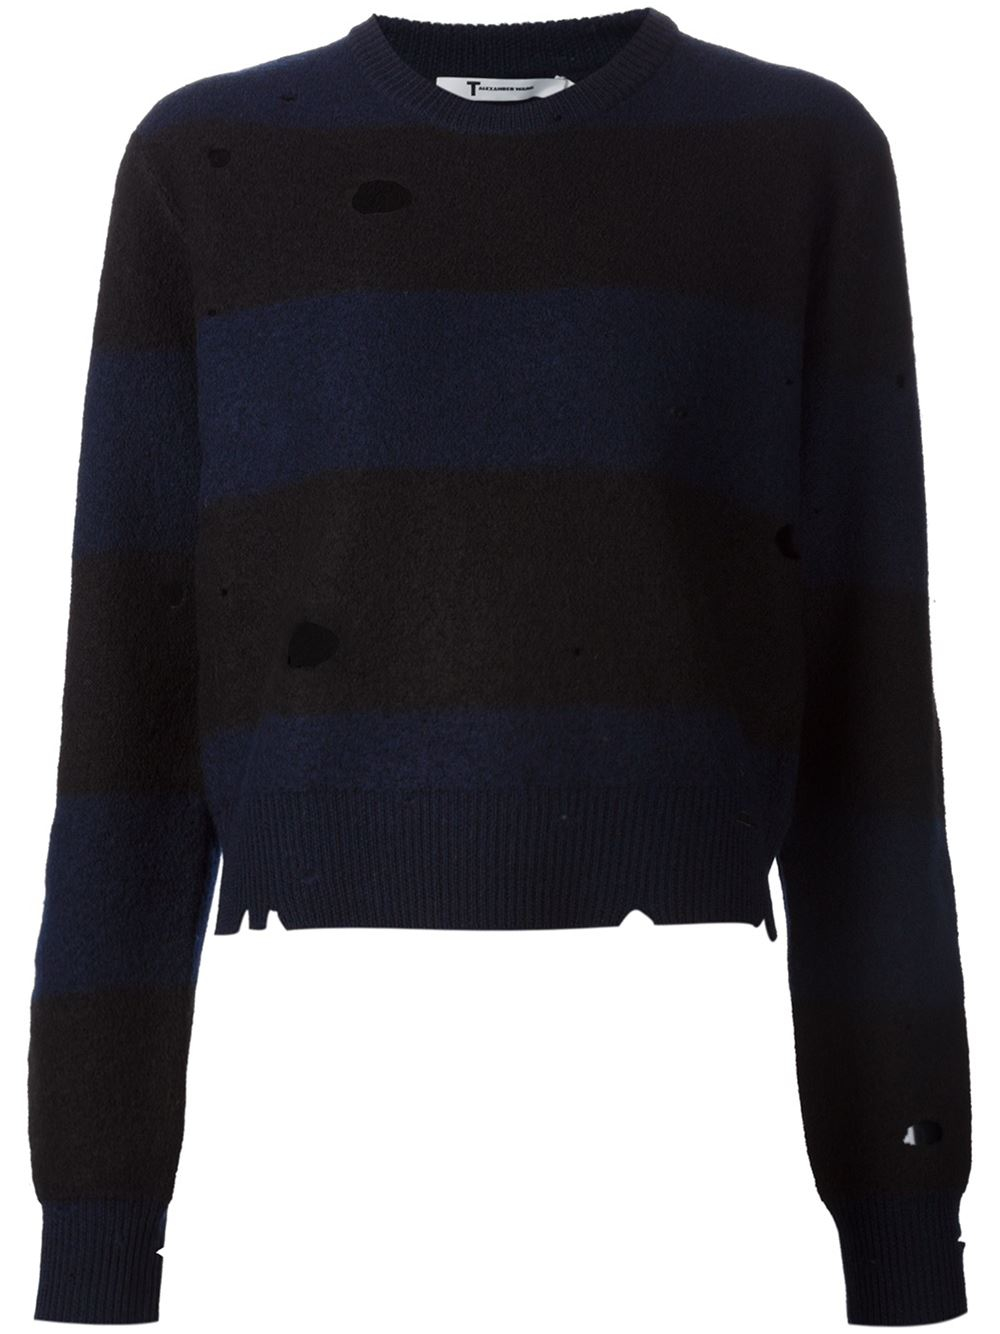 Alexander wang Striped Sweater In Boiled Wool With Holes Allround ...